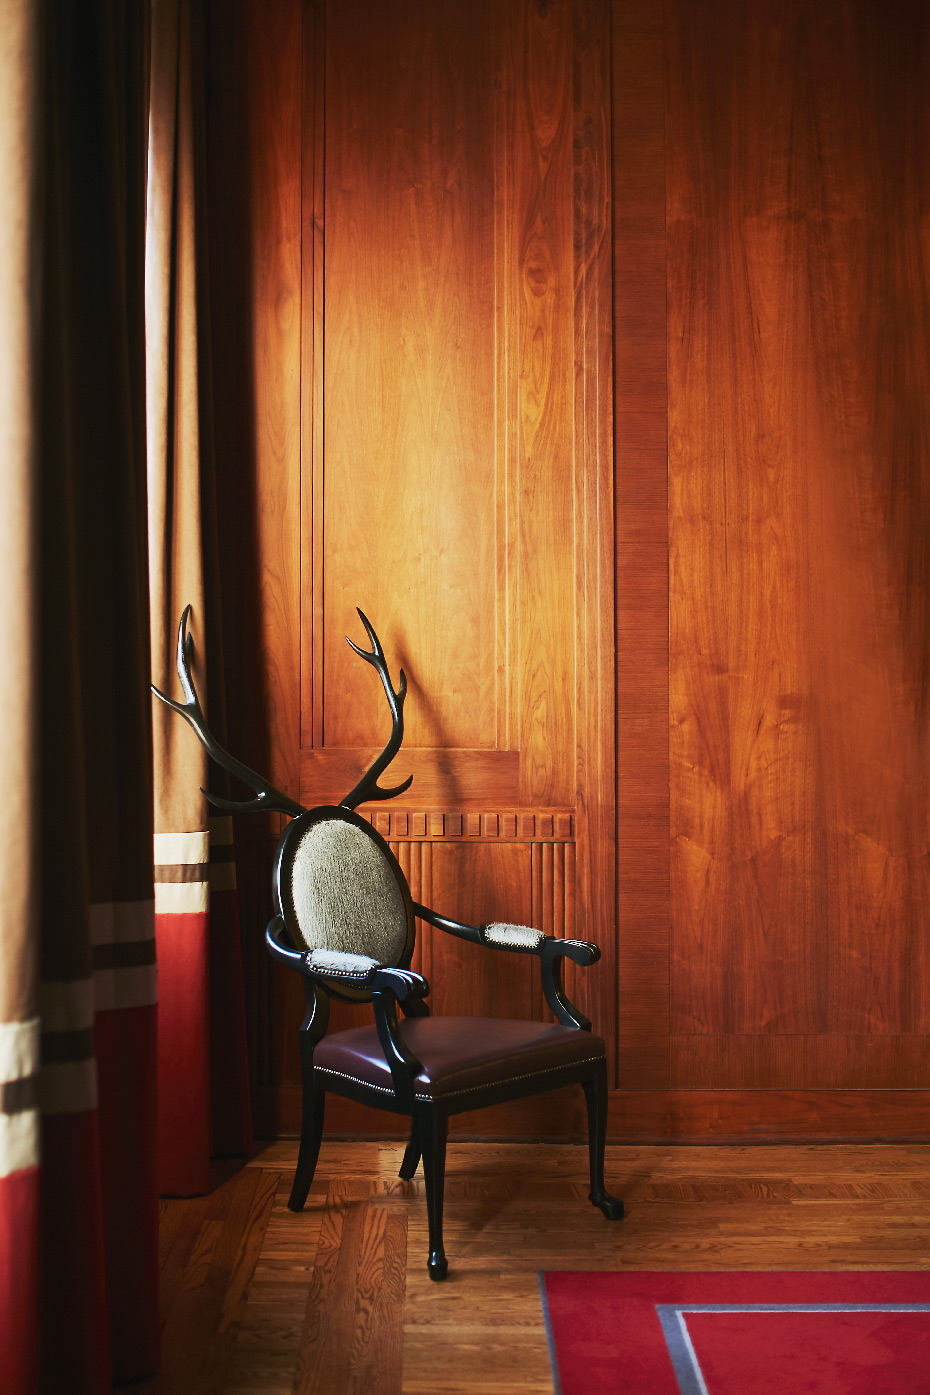 Stacey Van Berkel Photography I Antler chair in Paneled room I The Kimpton Cardinal Hotel I Winston-Salem, North Carolina